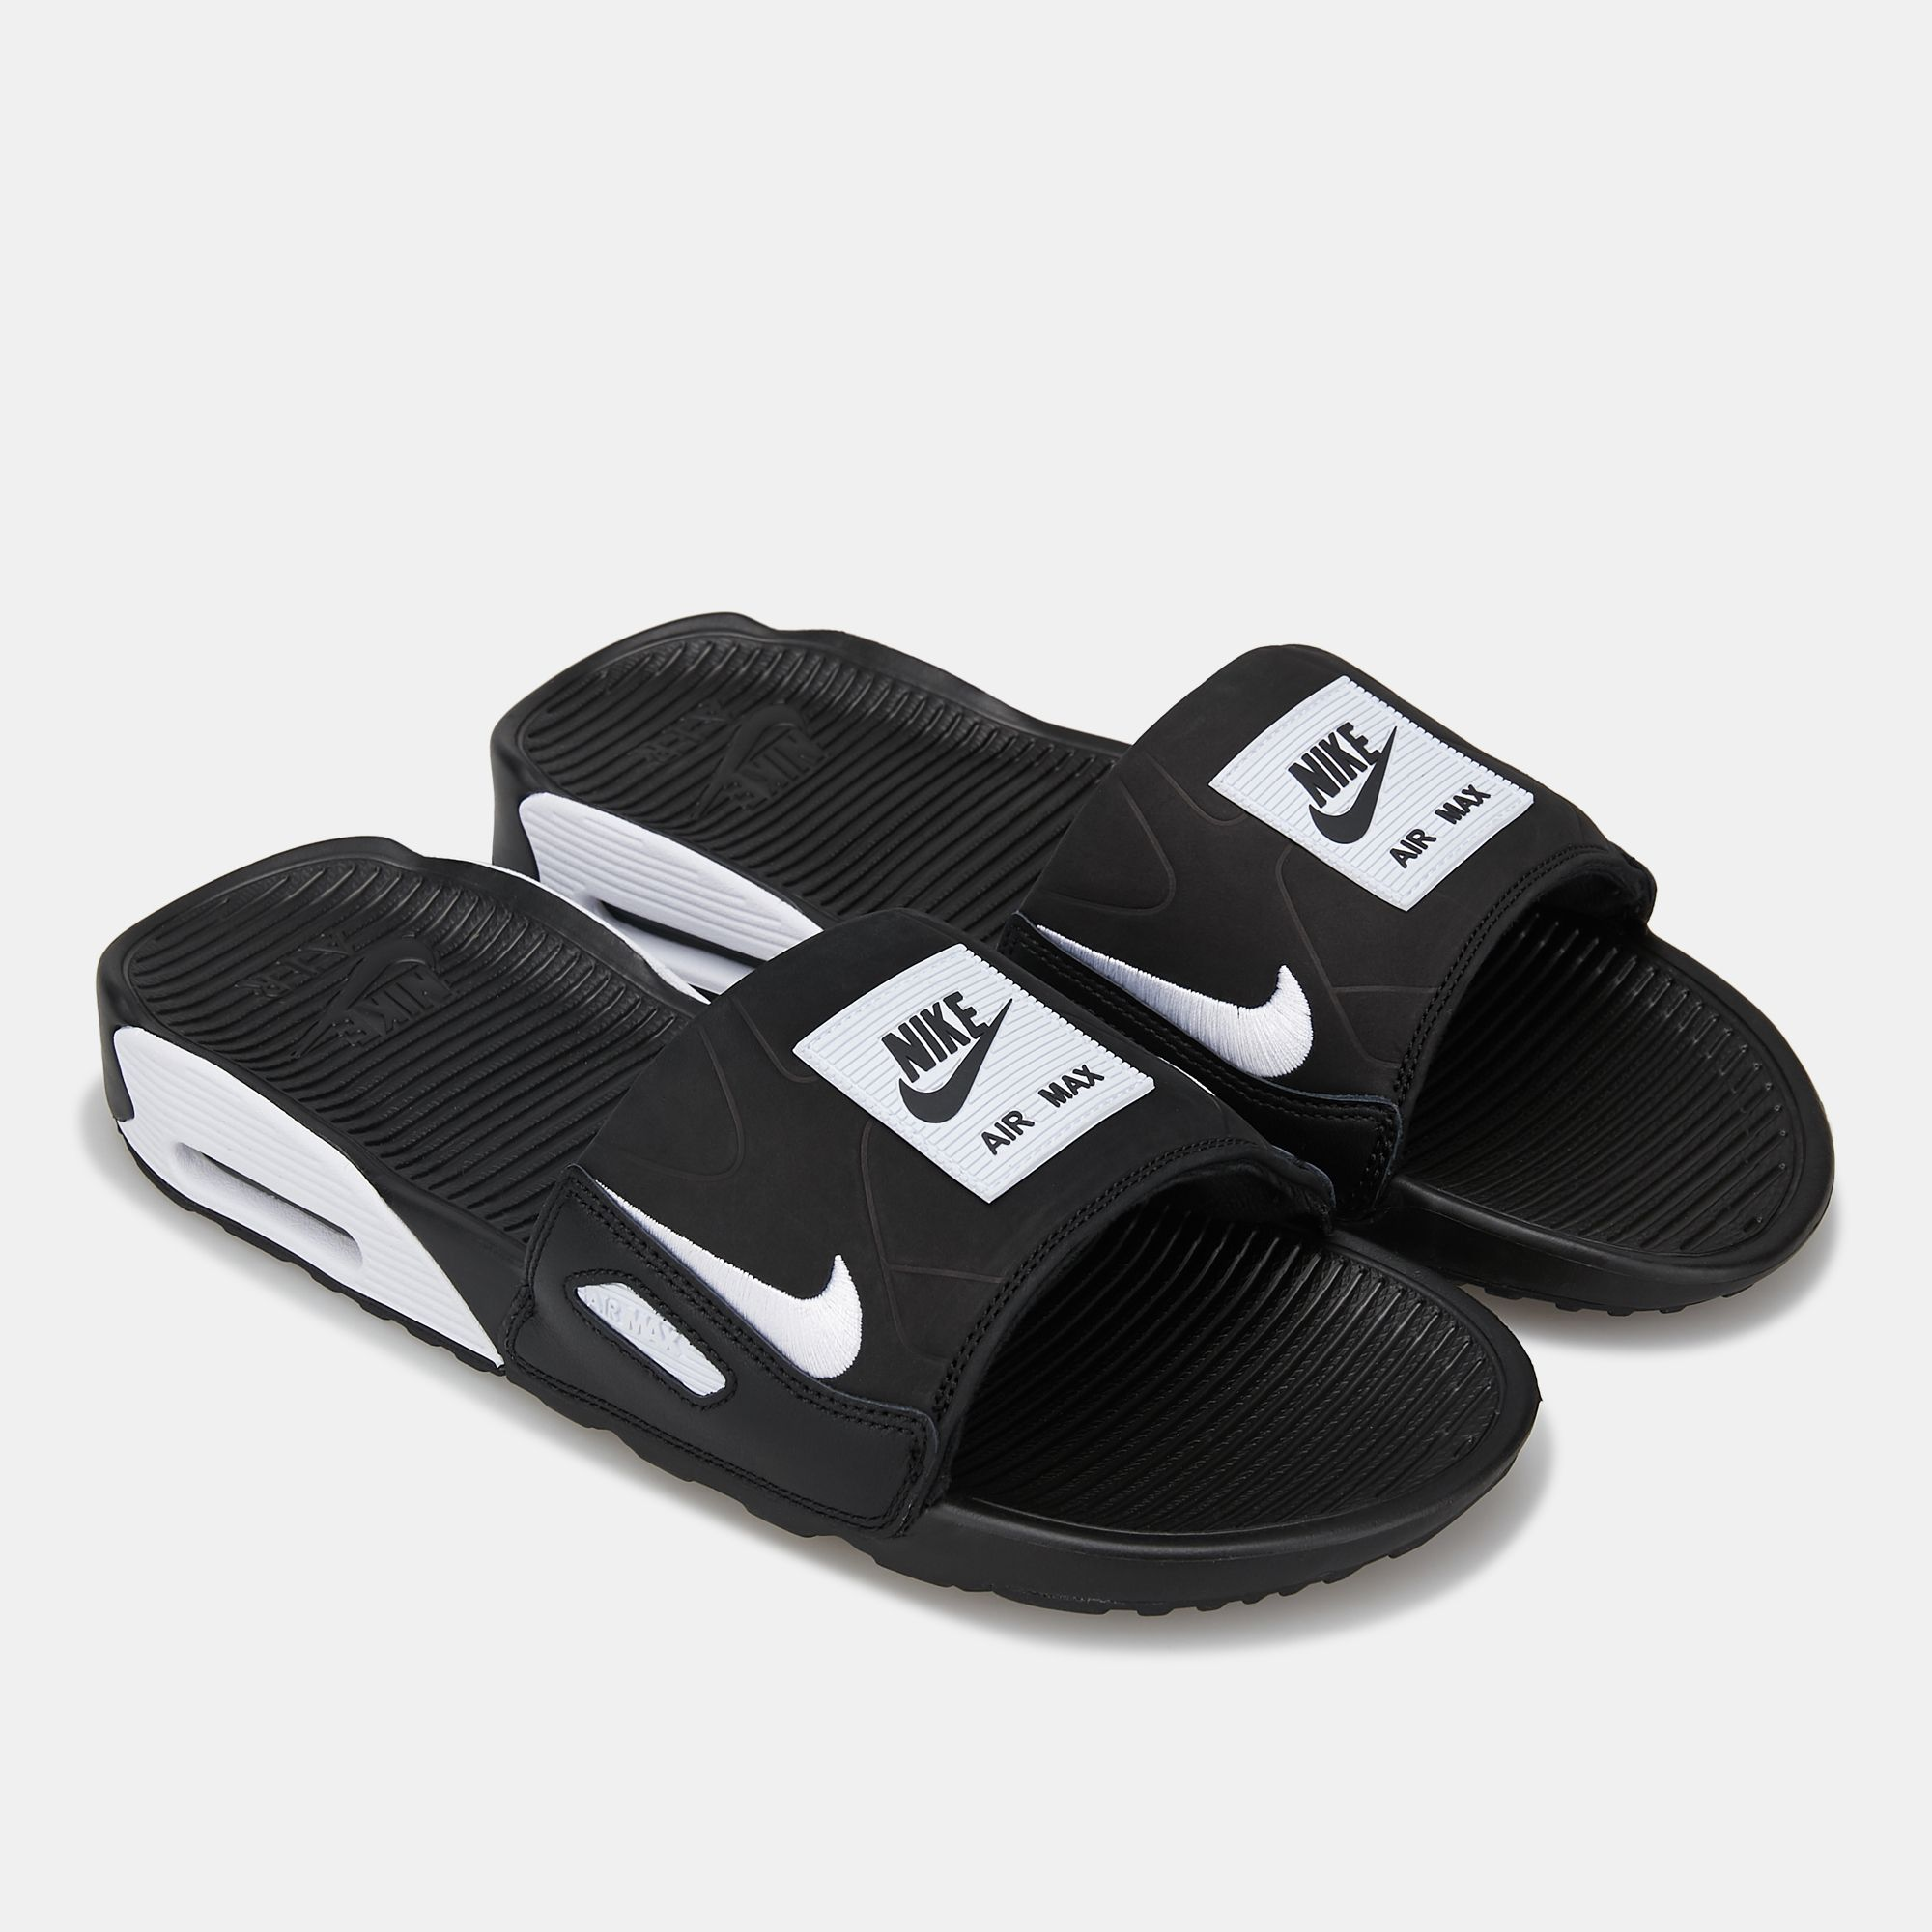 sliders for men nike buy clothes shoes